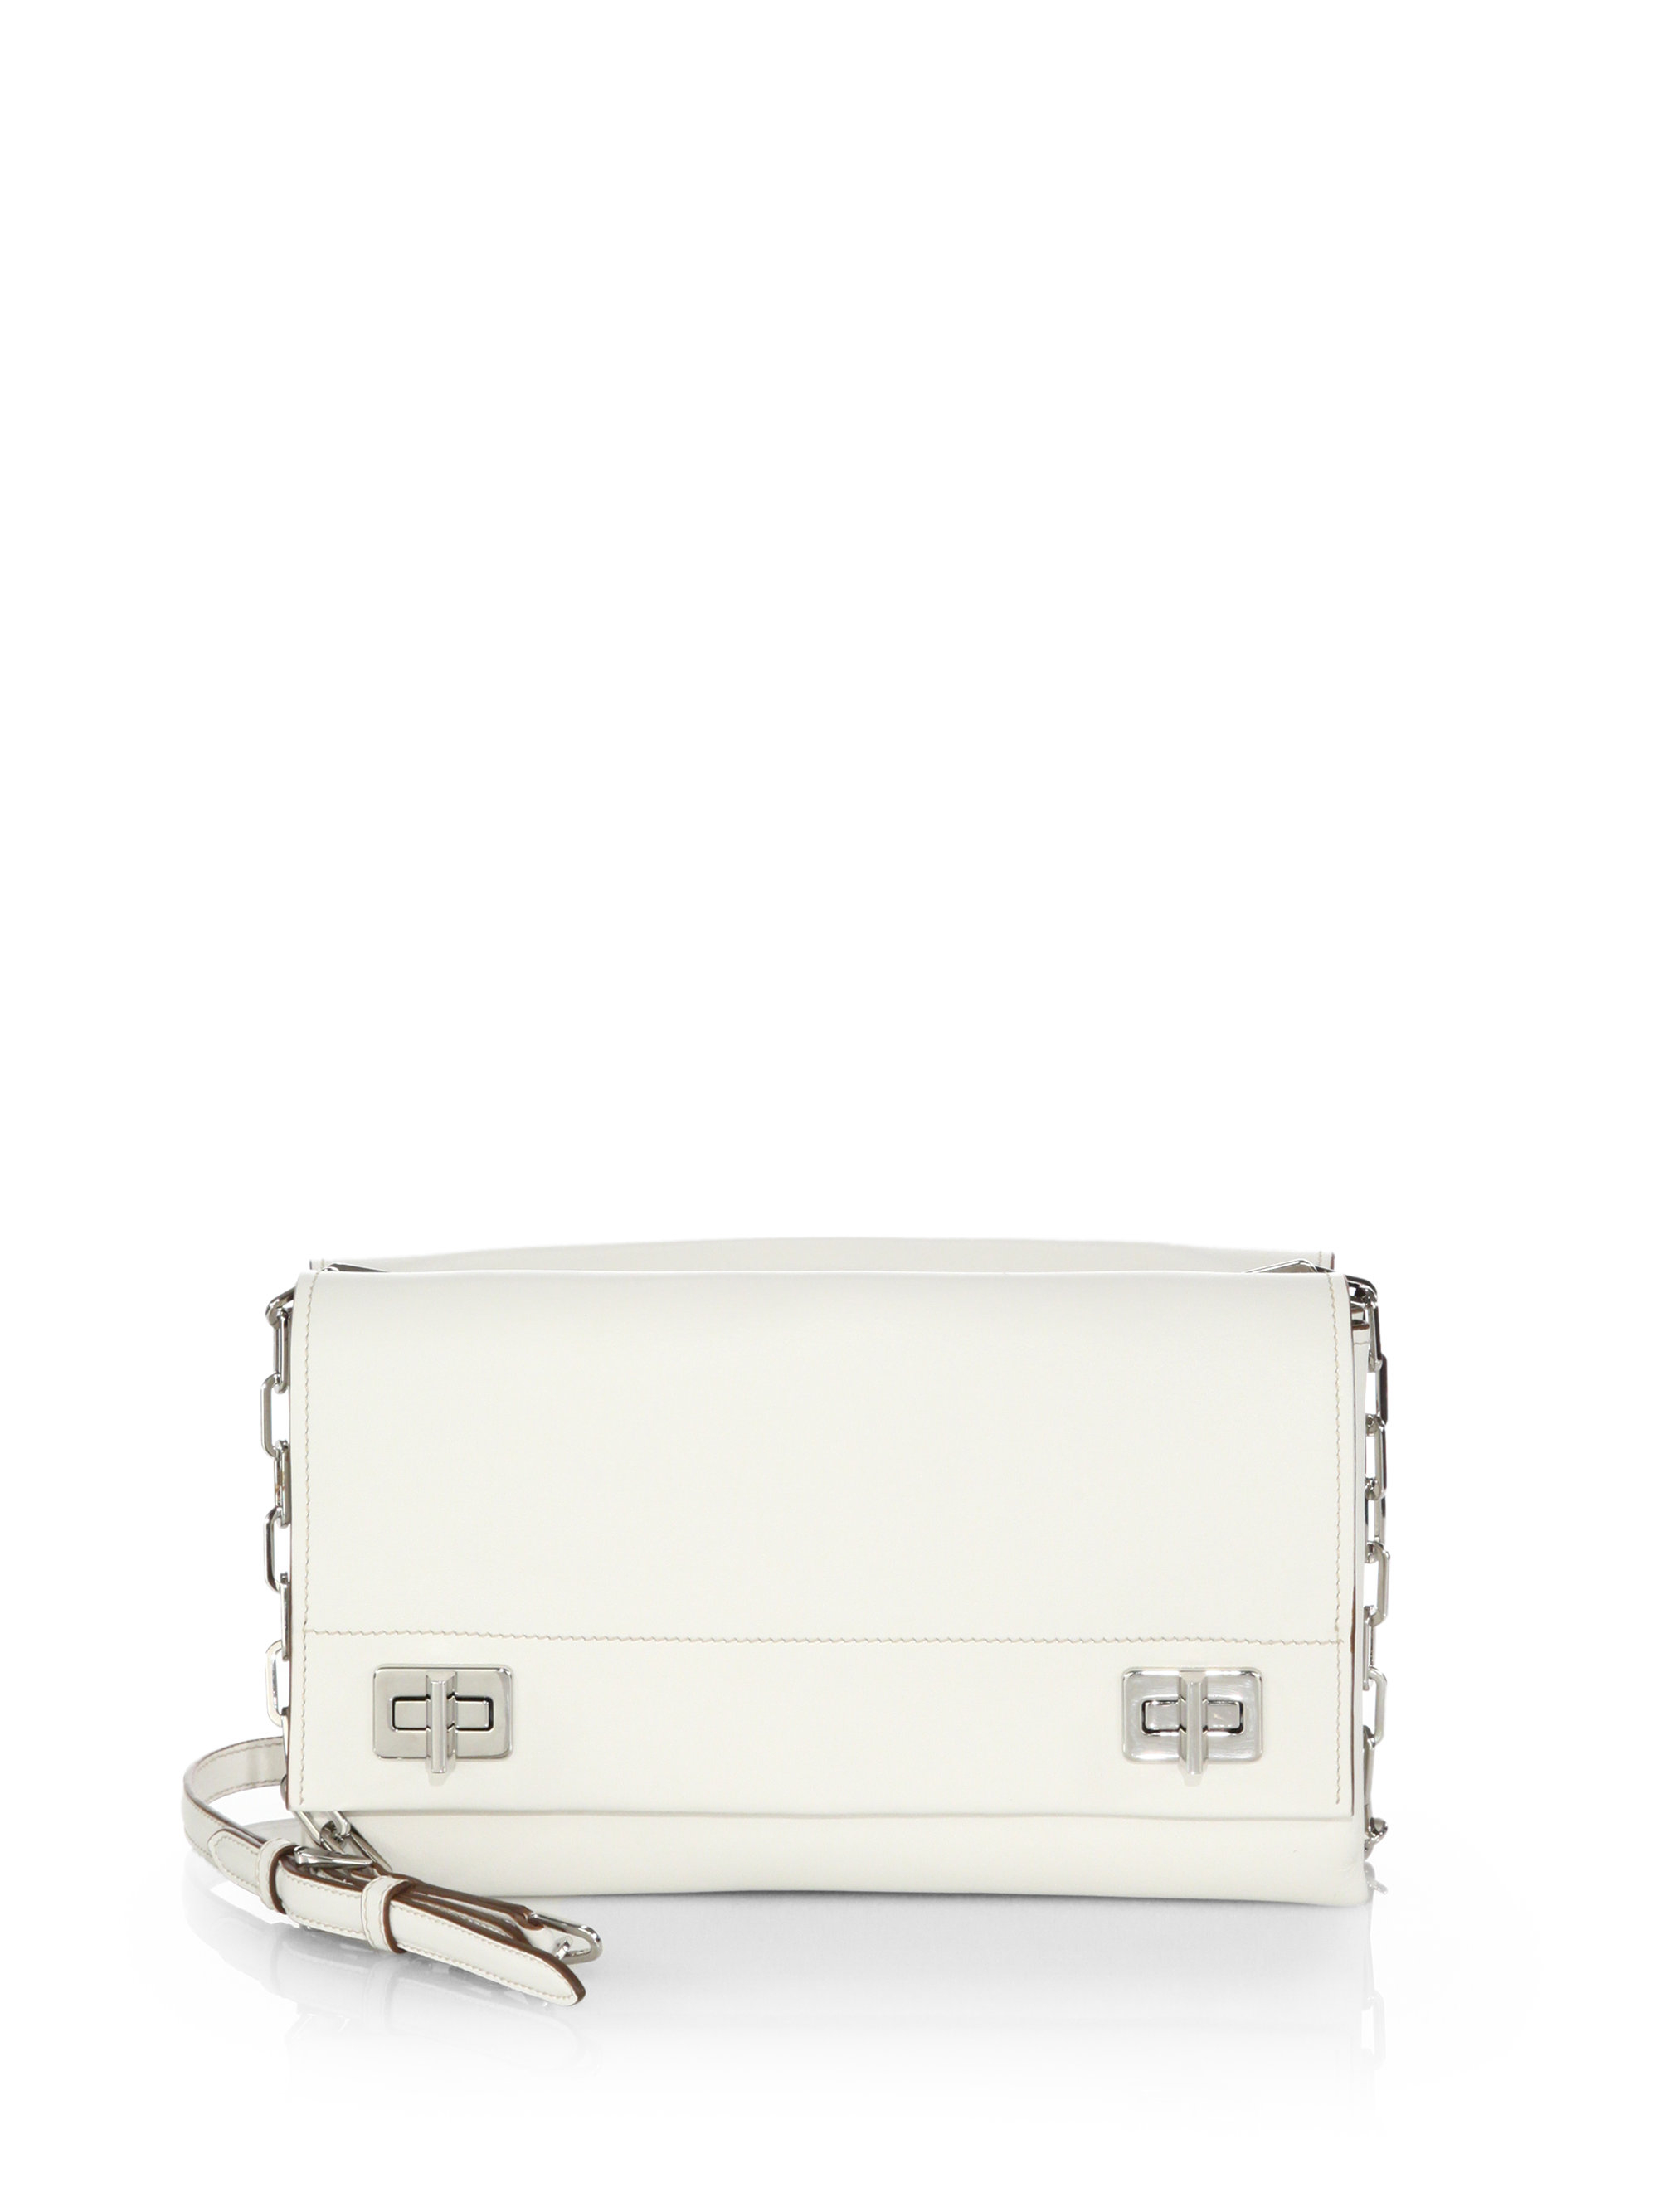 Prada Lux Calf Double Shoulder Bag in White (BIANCO-WHITE) | Lyst - prada shoulder bag white